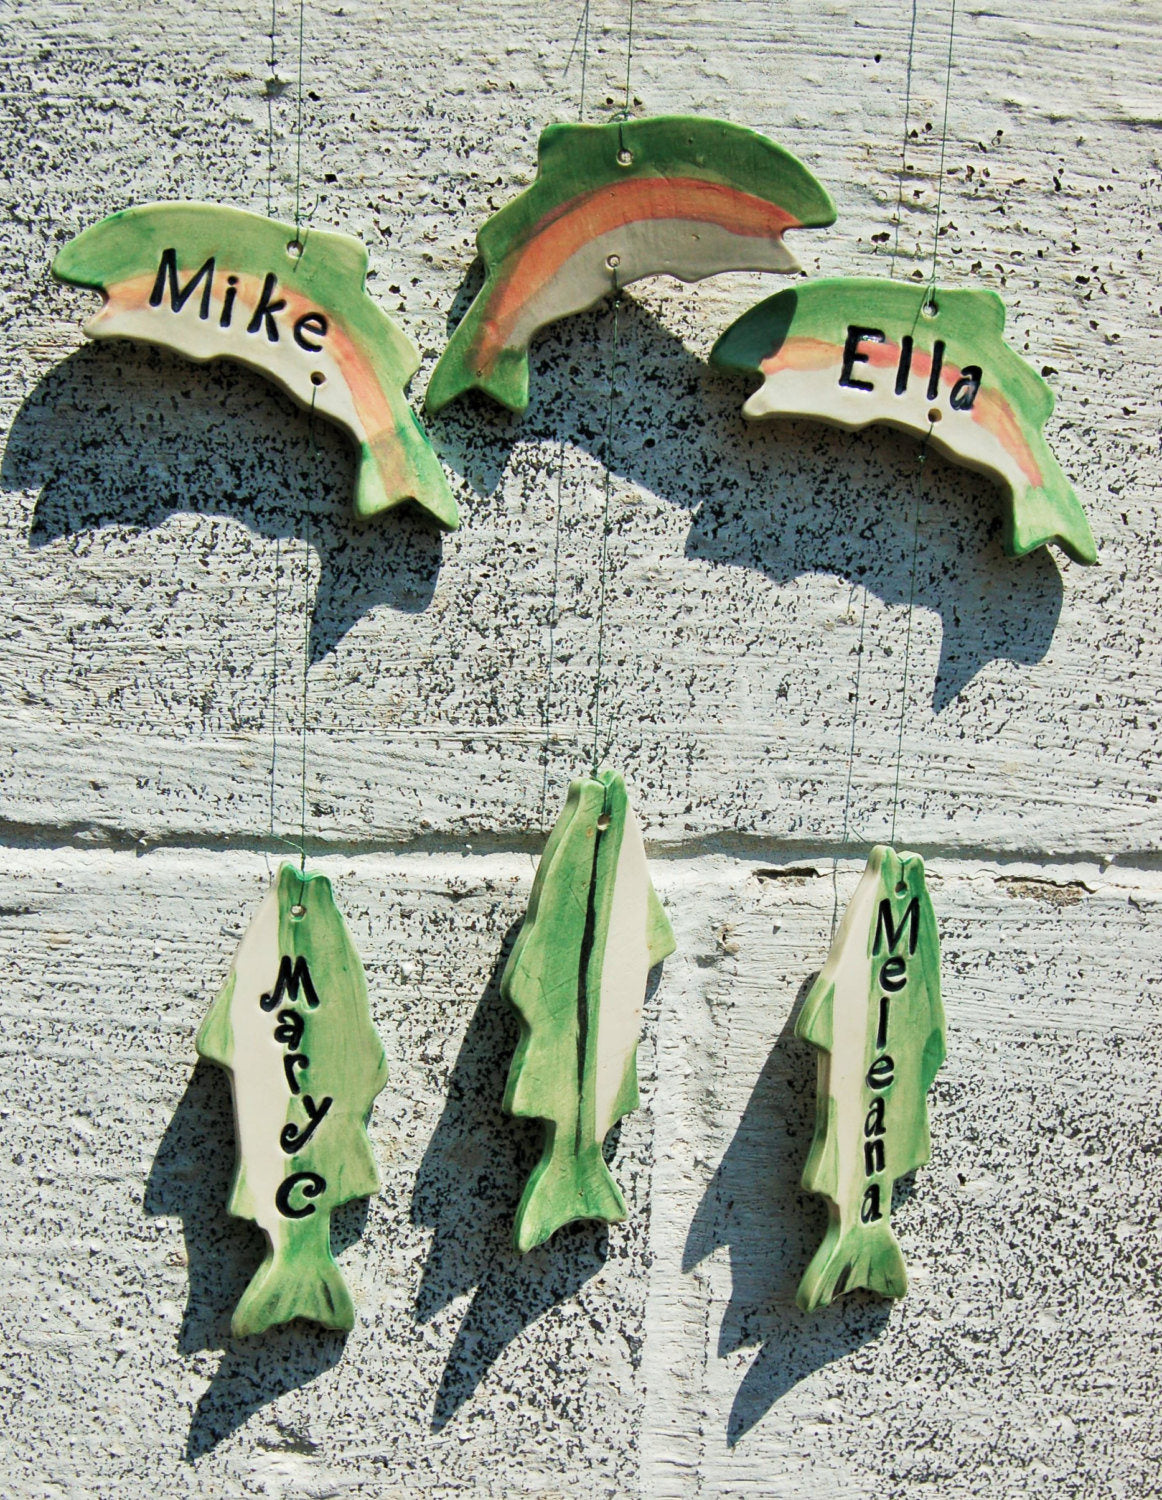 Extra Fish for Grandpa's Fishing Buddies Ceramic Wind Chime